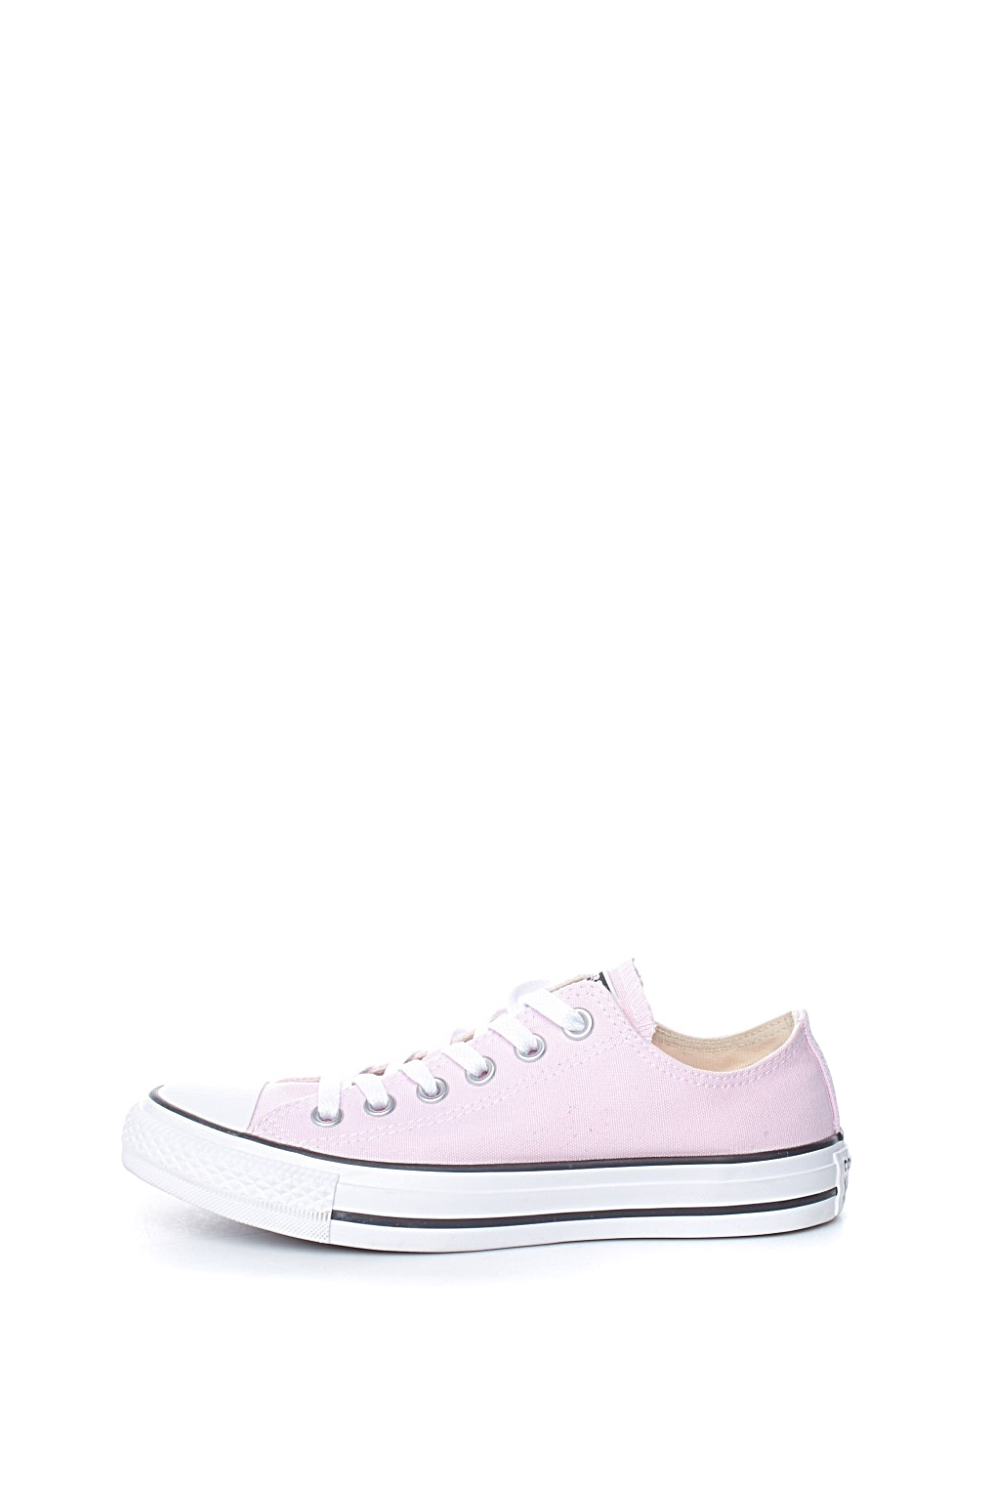 separation shoes 0f958 462df Collective Online CONVERSE – Unisex sneakers CONVERSE Chuck Taylor All Star  Ox ροζ